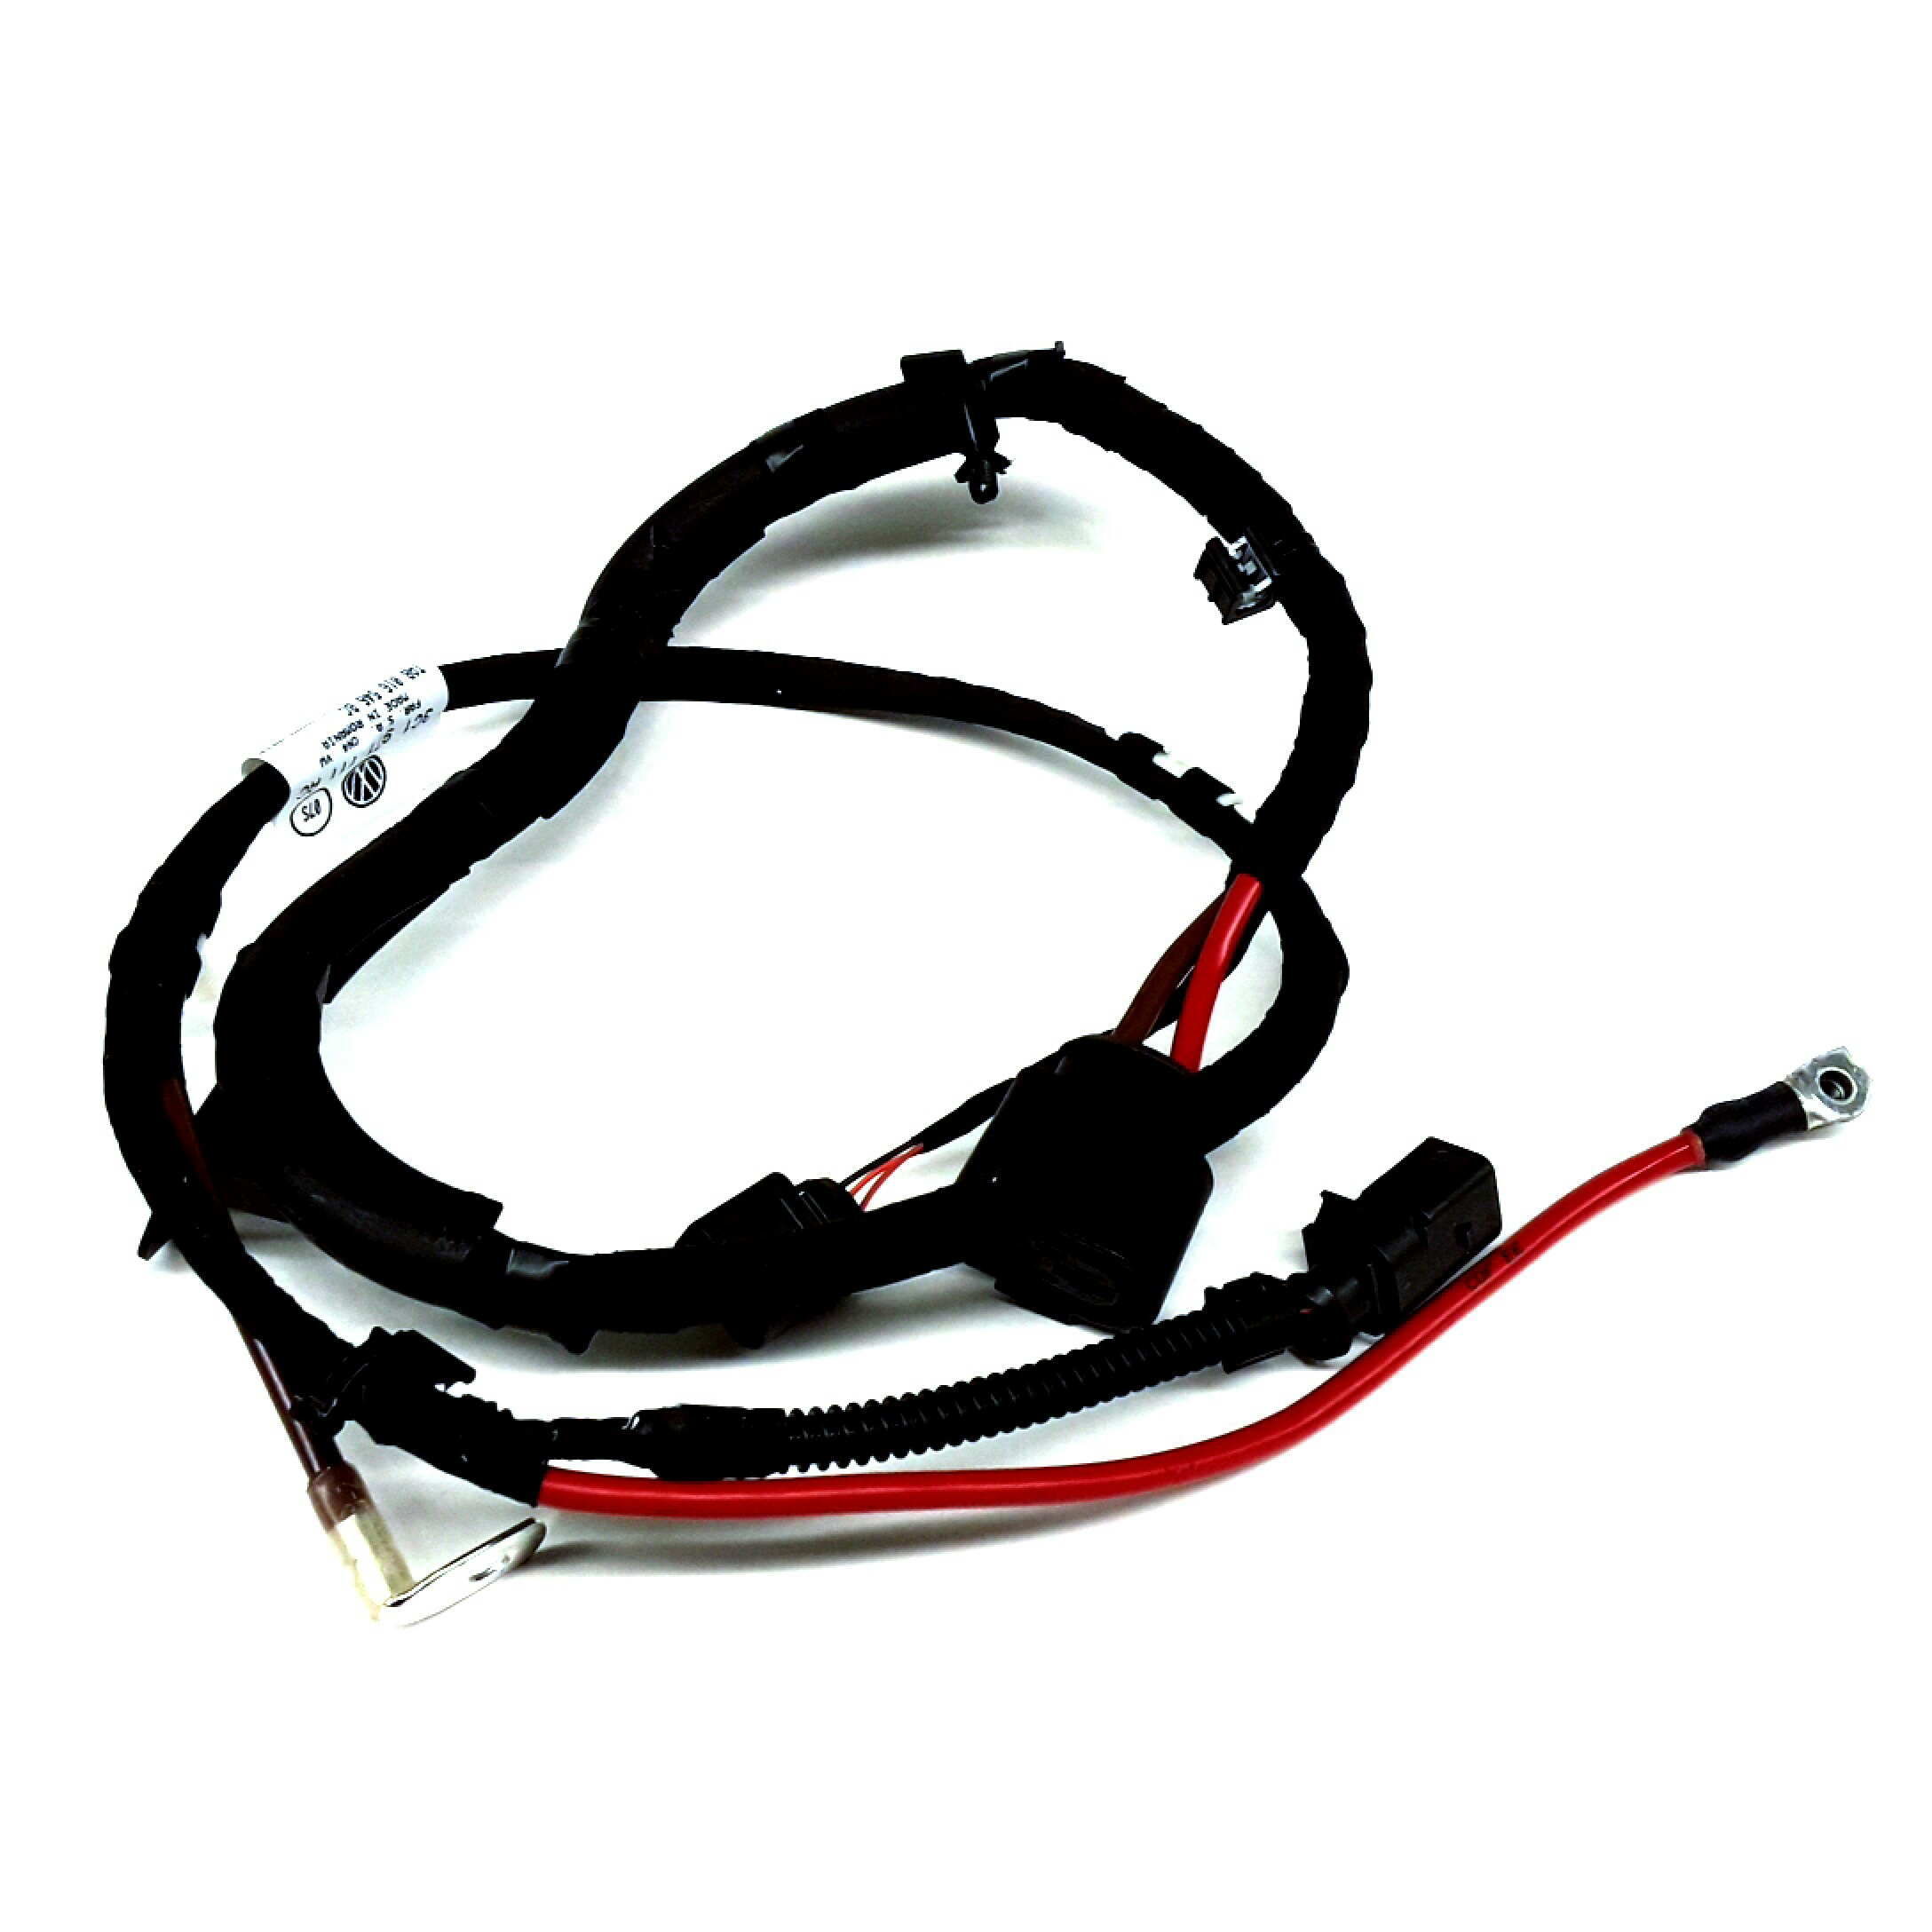 3c1971111ac Audi Harness For Servotronic Audi Jim